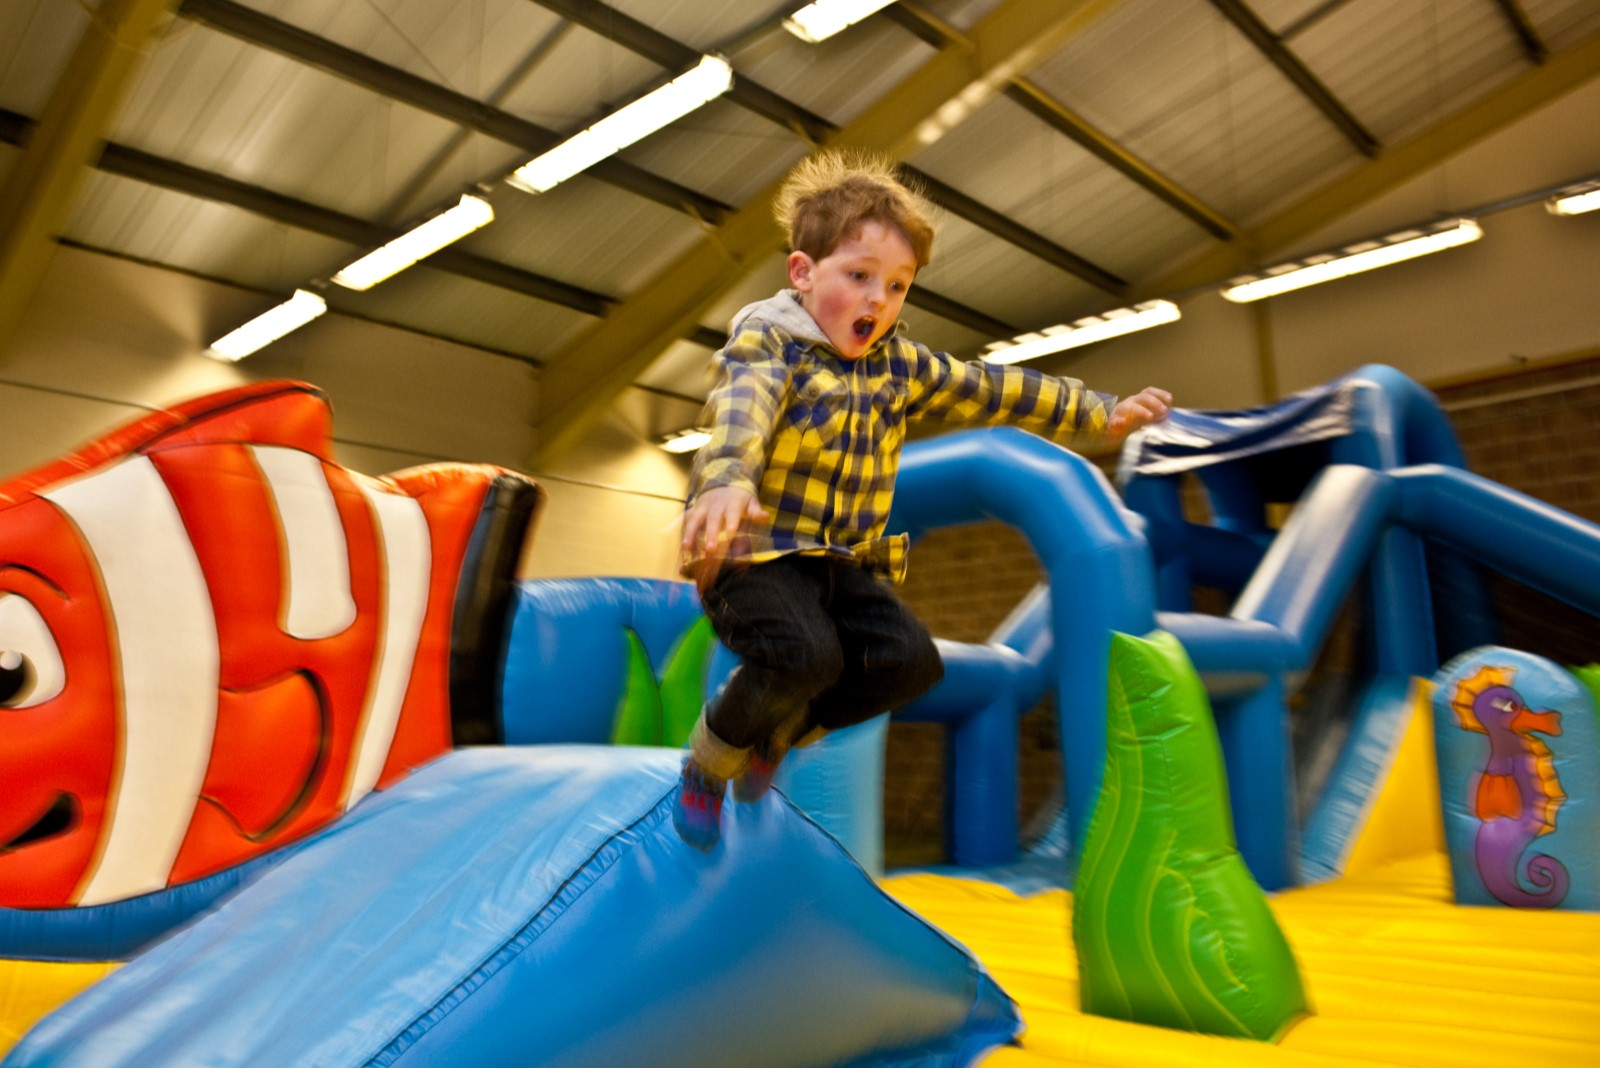 boy in yellow shirt jumping on soft play.jpg